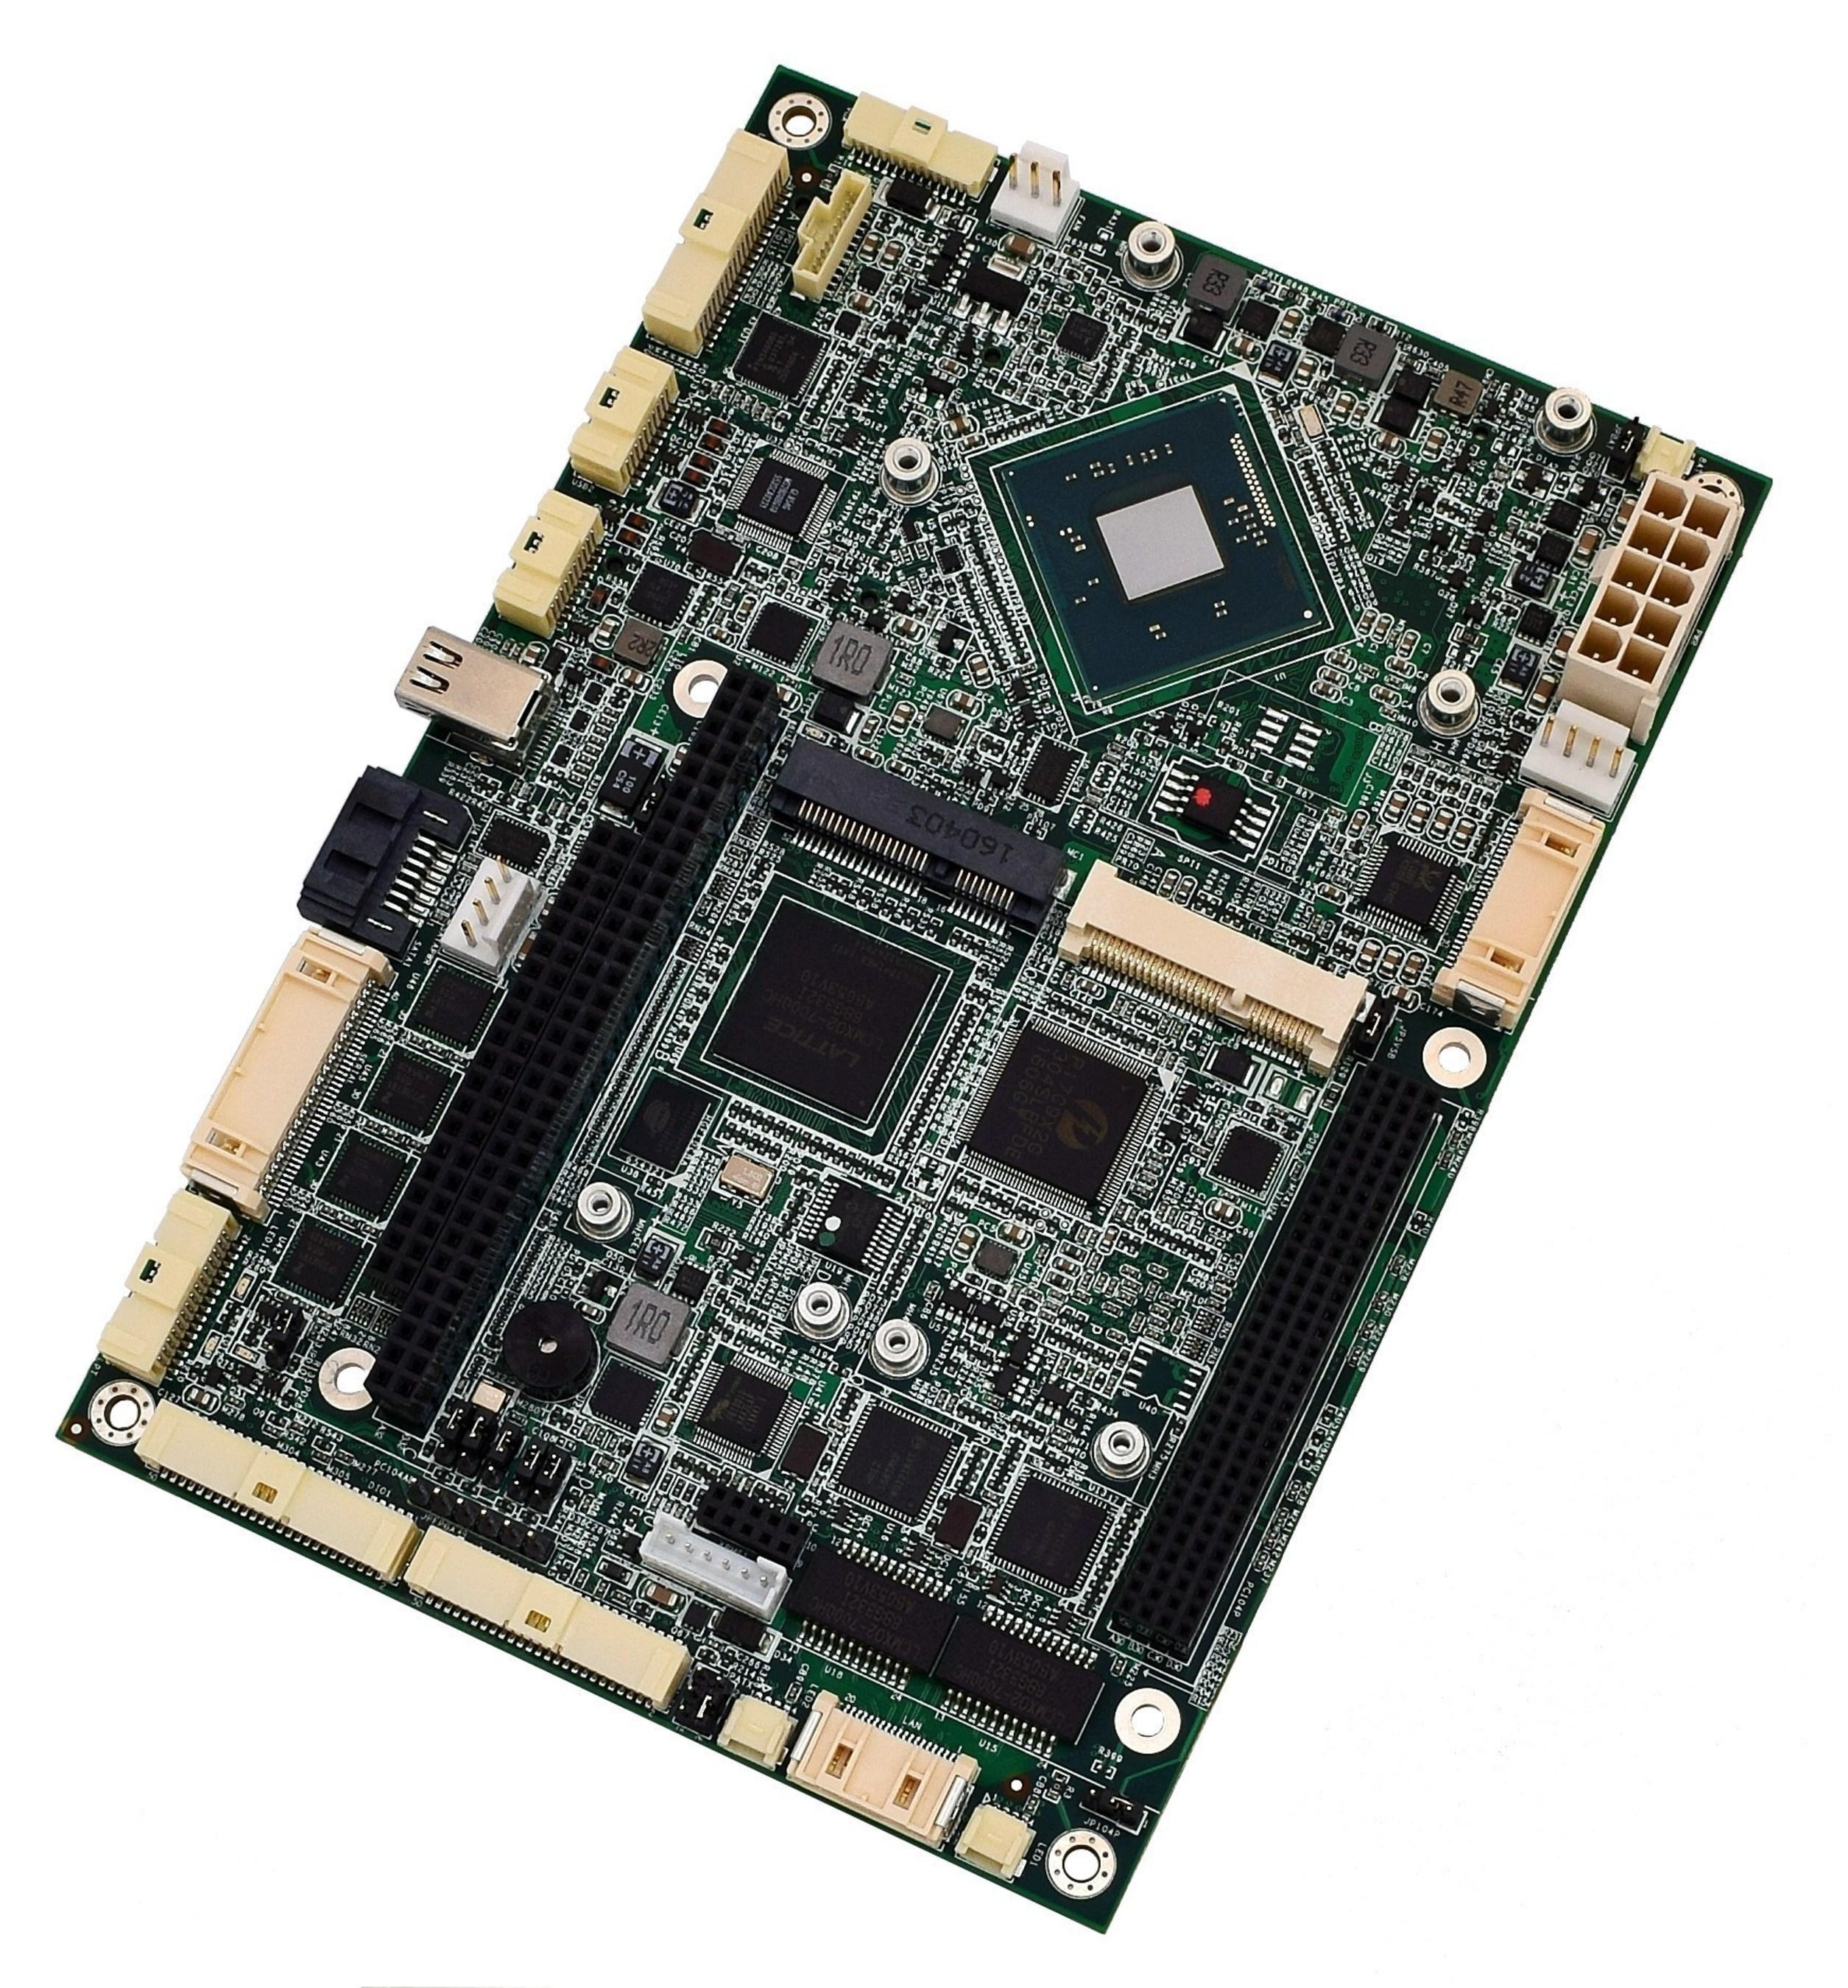 WinSystems Releases New Ruggedized Industrial Single Board Computers Built on Intel' Atom E3800 CPU in EPIC Form Factor